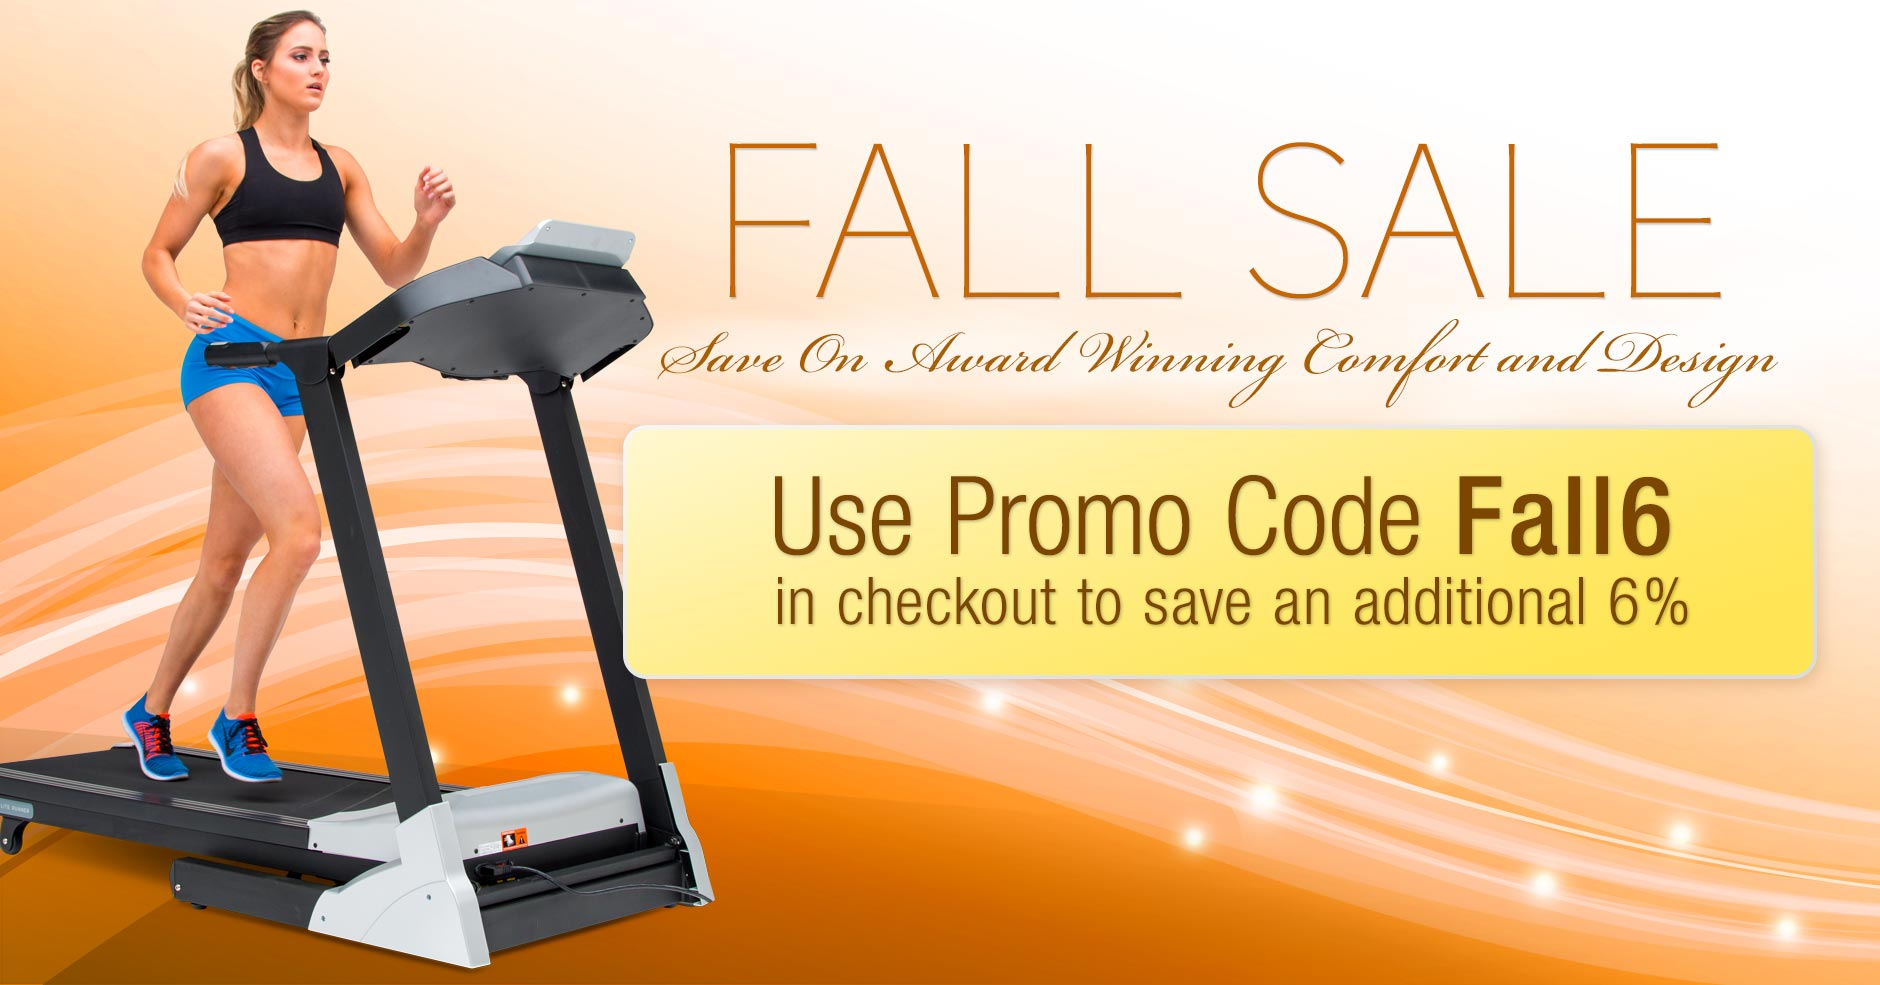 3G Cardio Fall Sale - Save 6 Percent on our Fitness Equipment